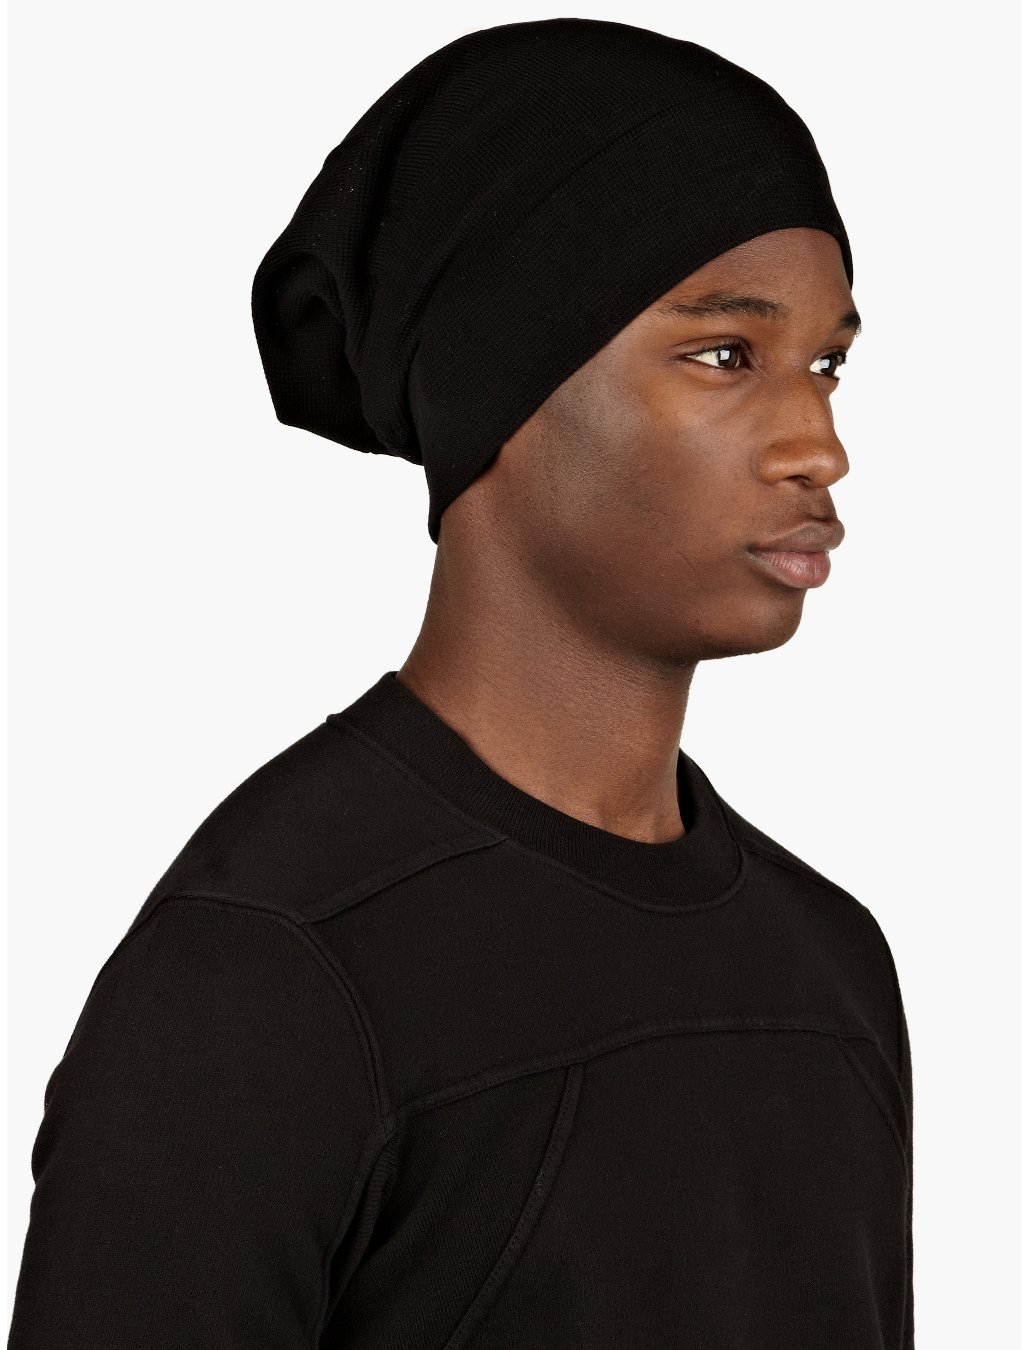 Comfy bucket hats and beanies for men provide warmth and add style to an otherwise basic street-look. Soft, single-tone, ribbed beanies complement a minimalist wardrobe. Play around with the brim on different beanies or bucket hats to create several looks that help you stand out or blend in.